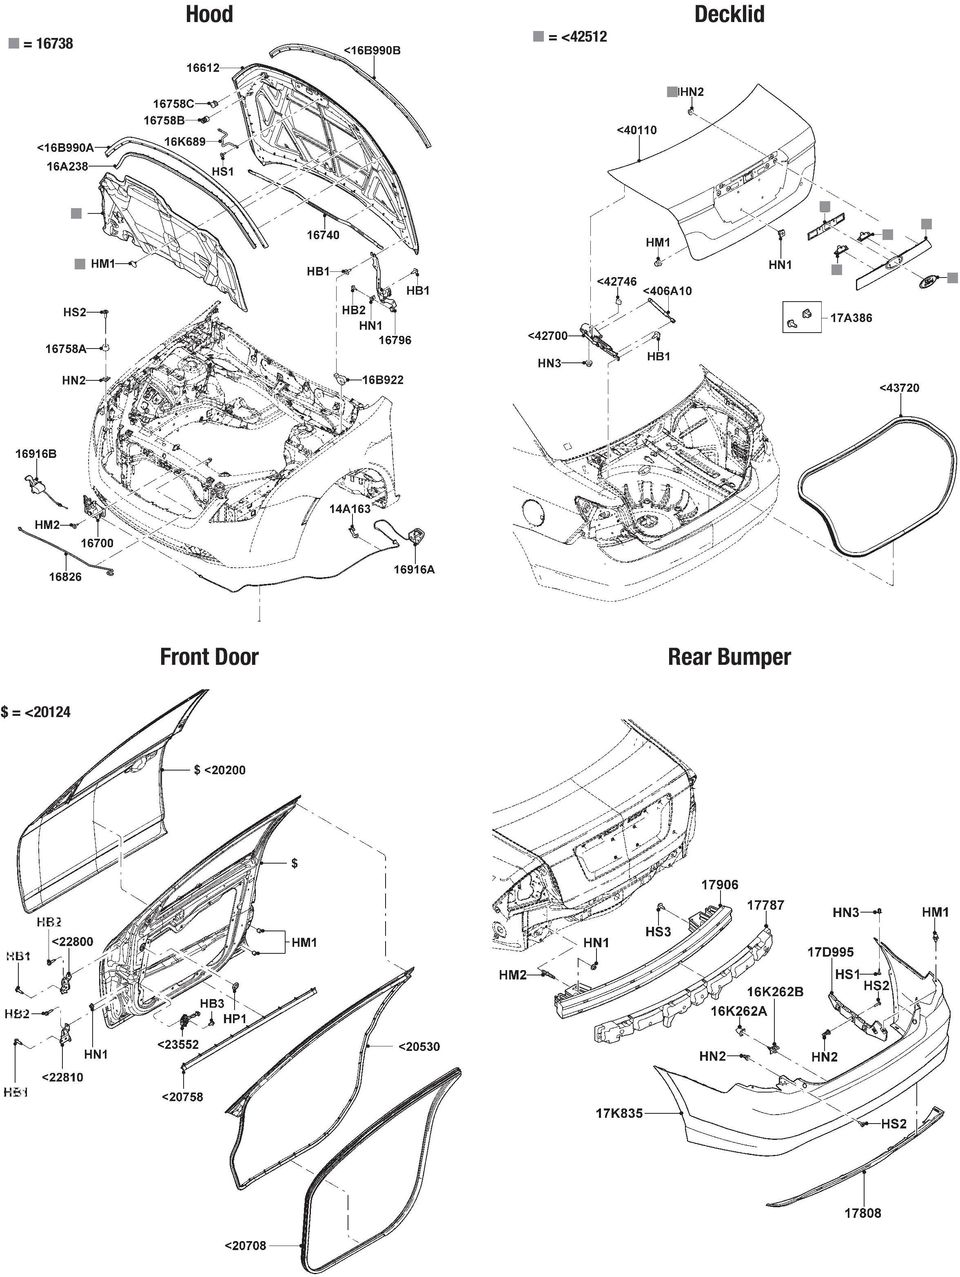 Ford S New Technology Center Focuses On Reparability Pdf Find An Engine Wiring Diagram For A 1998 F150 42 W V6 10 Provides Repairers Information Steel Motor Company Has Released Matrix That Outlines The Auto Manufacturer